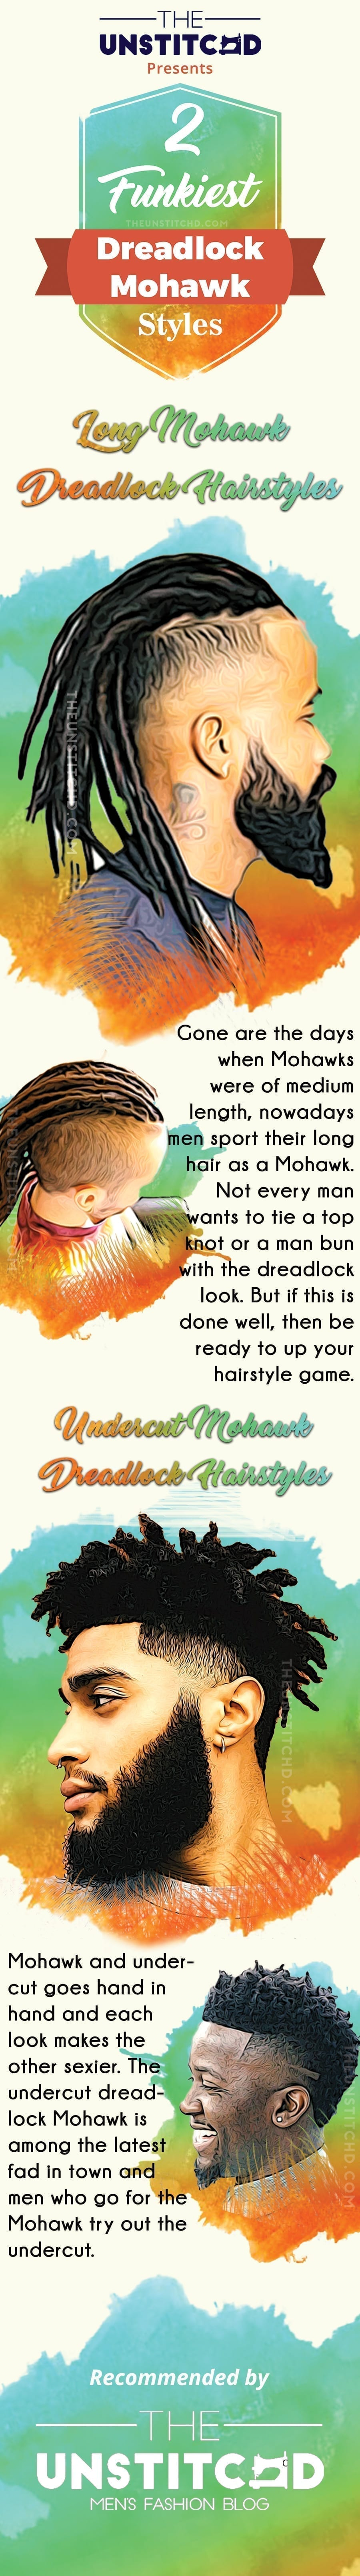 Mohawk-Dreadlock